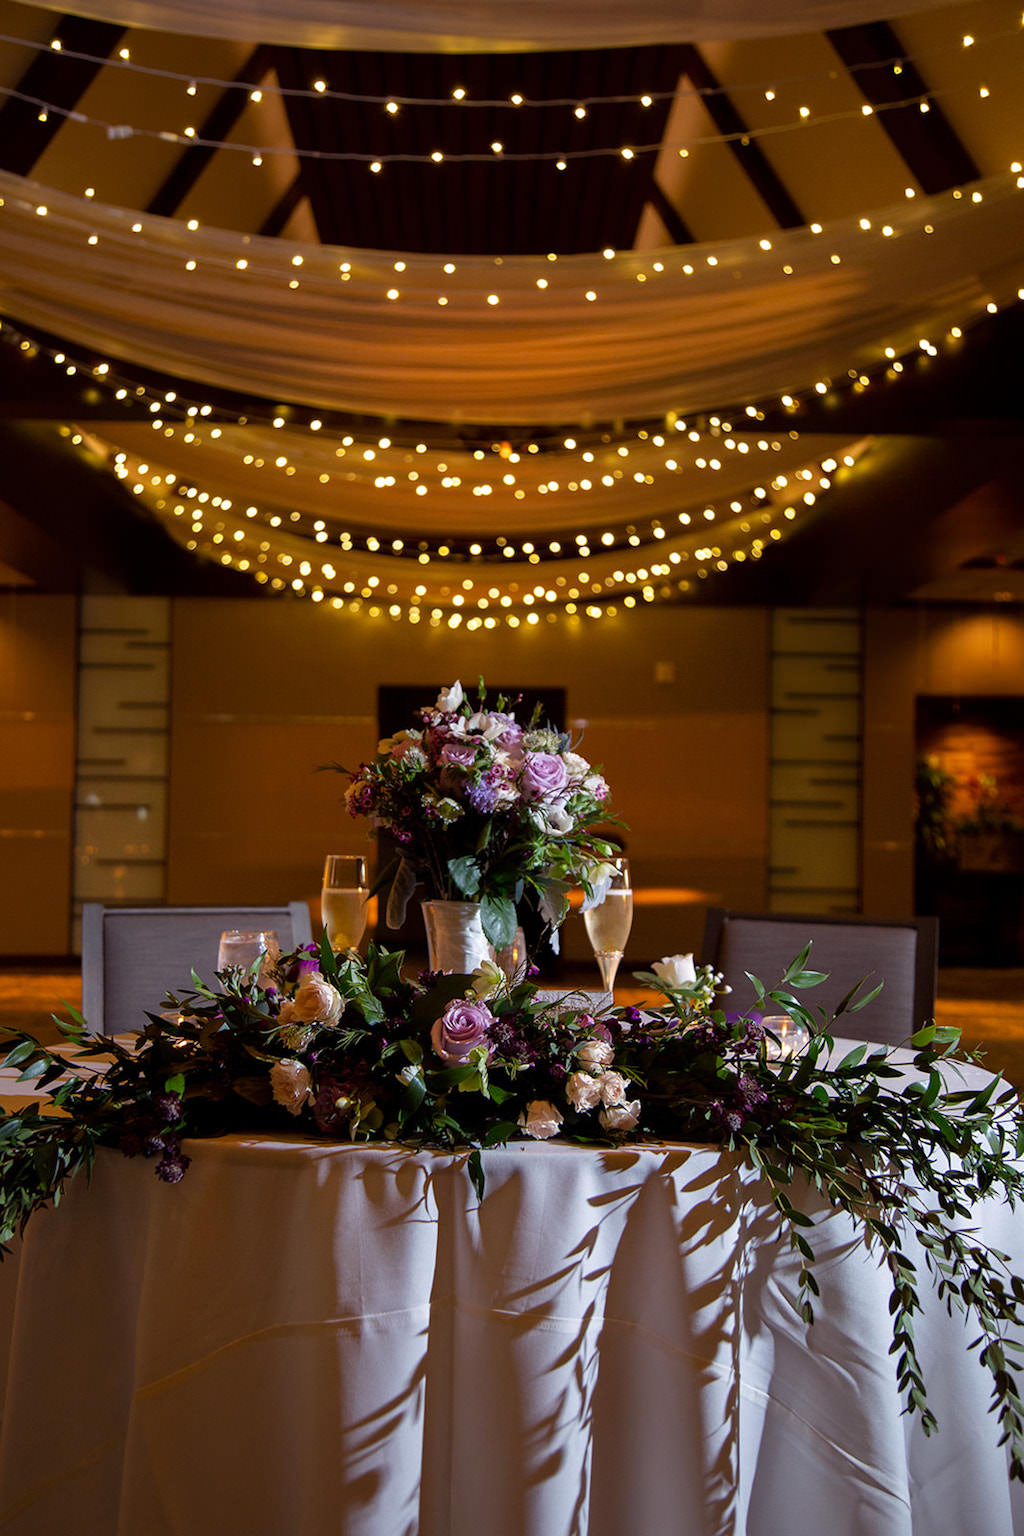 Elegant, Classic Vintage Garden Inspired Wedding Reception Decor and Sweetheart Table, Lush Cascading Centerpiece, Purple, Lilac Roses, Green Hydrangeas, Blush Pink and Greenery Floral Arrangement, White Ceiling Draping with String Lights | Sarasota Wedding Planner Laura Detwiler Events | Wedding Venue Marie Selby Botanical Gardens